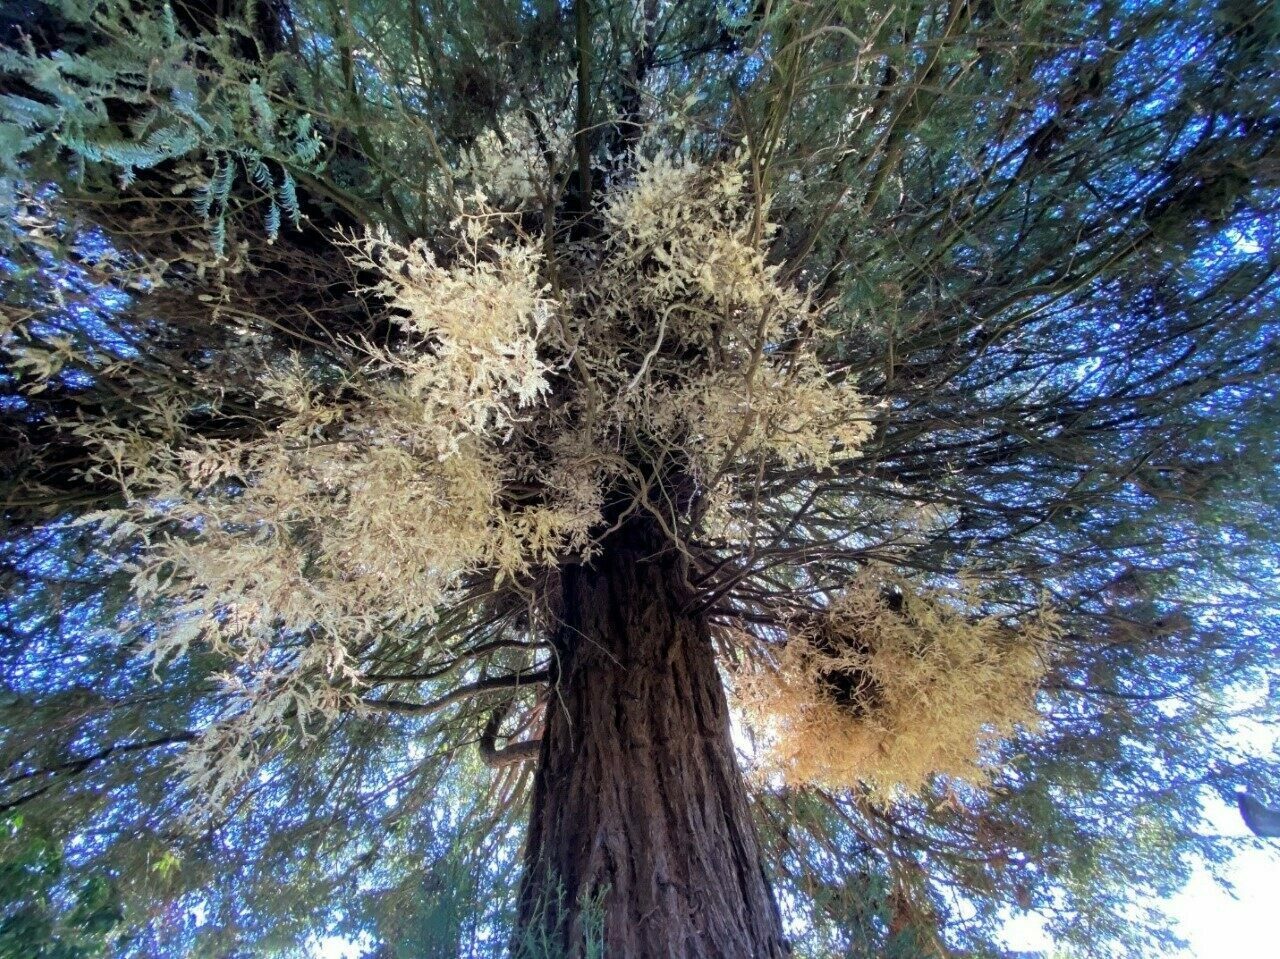 Albino redwoods, which do not produce chorophyll, and even rarer chimera redwoods, which have patches of albinism, may hold clues to an ecosystem's health, according to preliminary research.